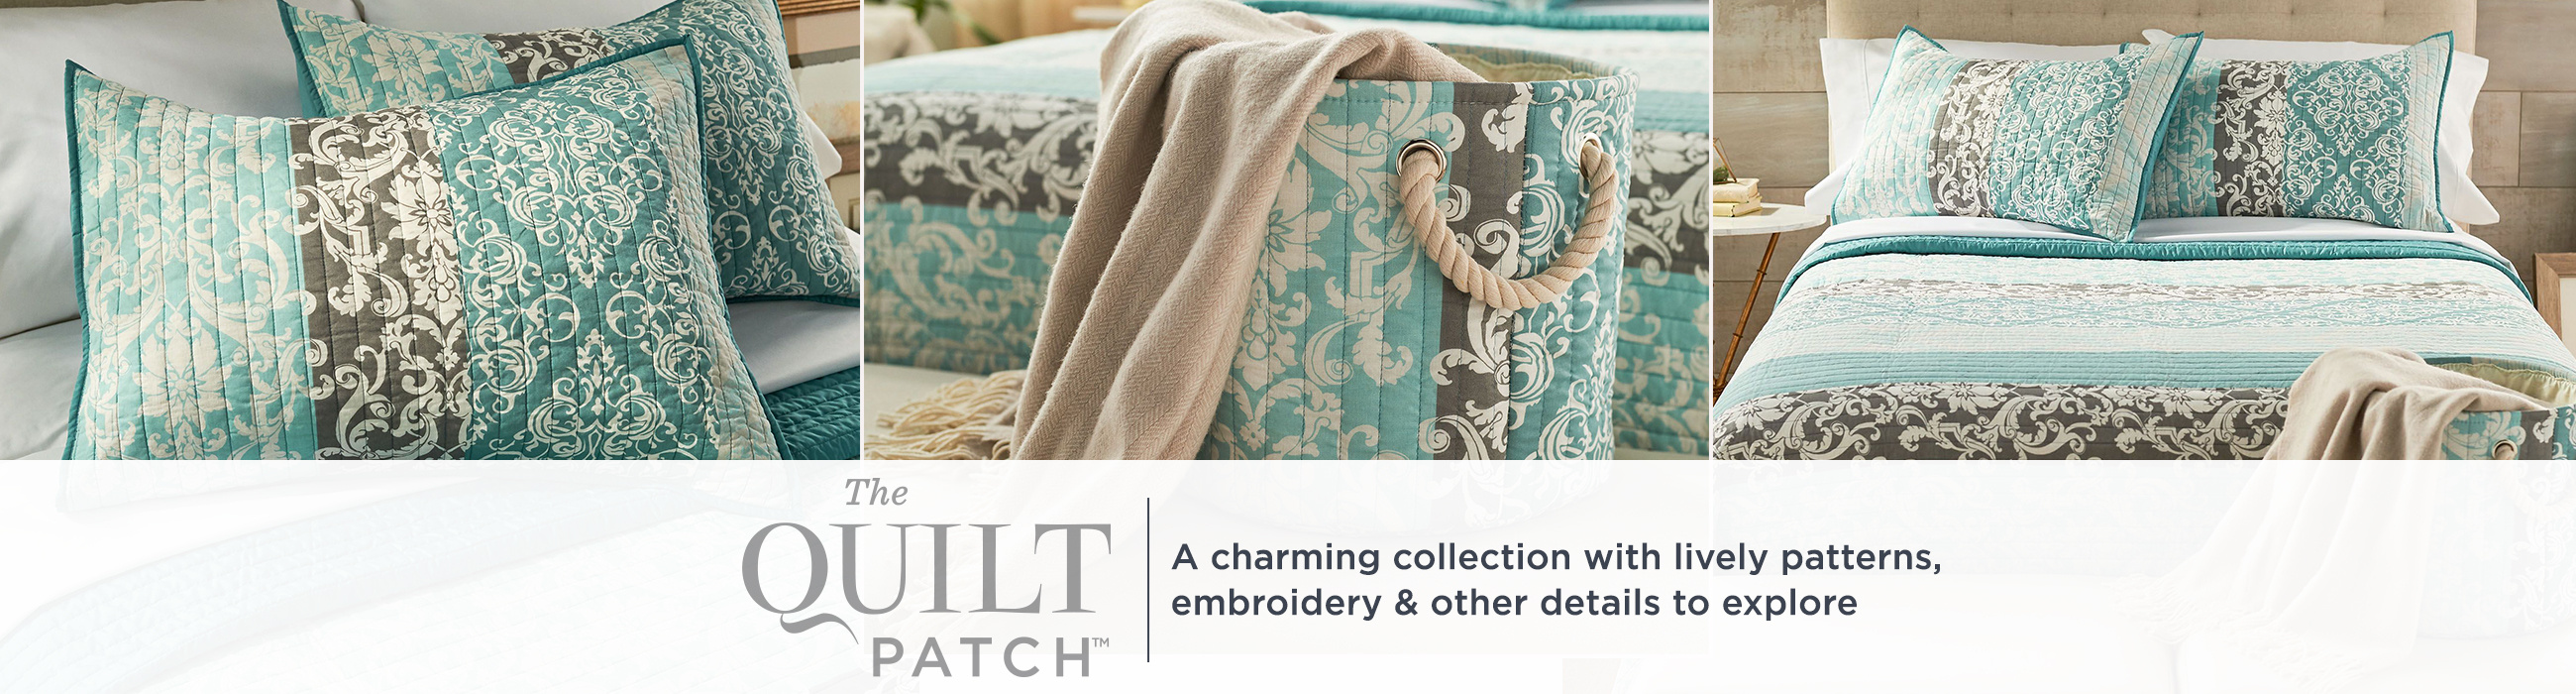 The Quilt Patch — A charming collection with lively patterns, embroidery & other details to explore